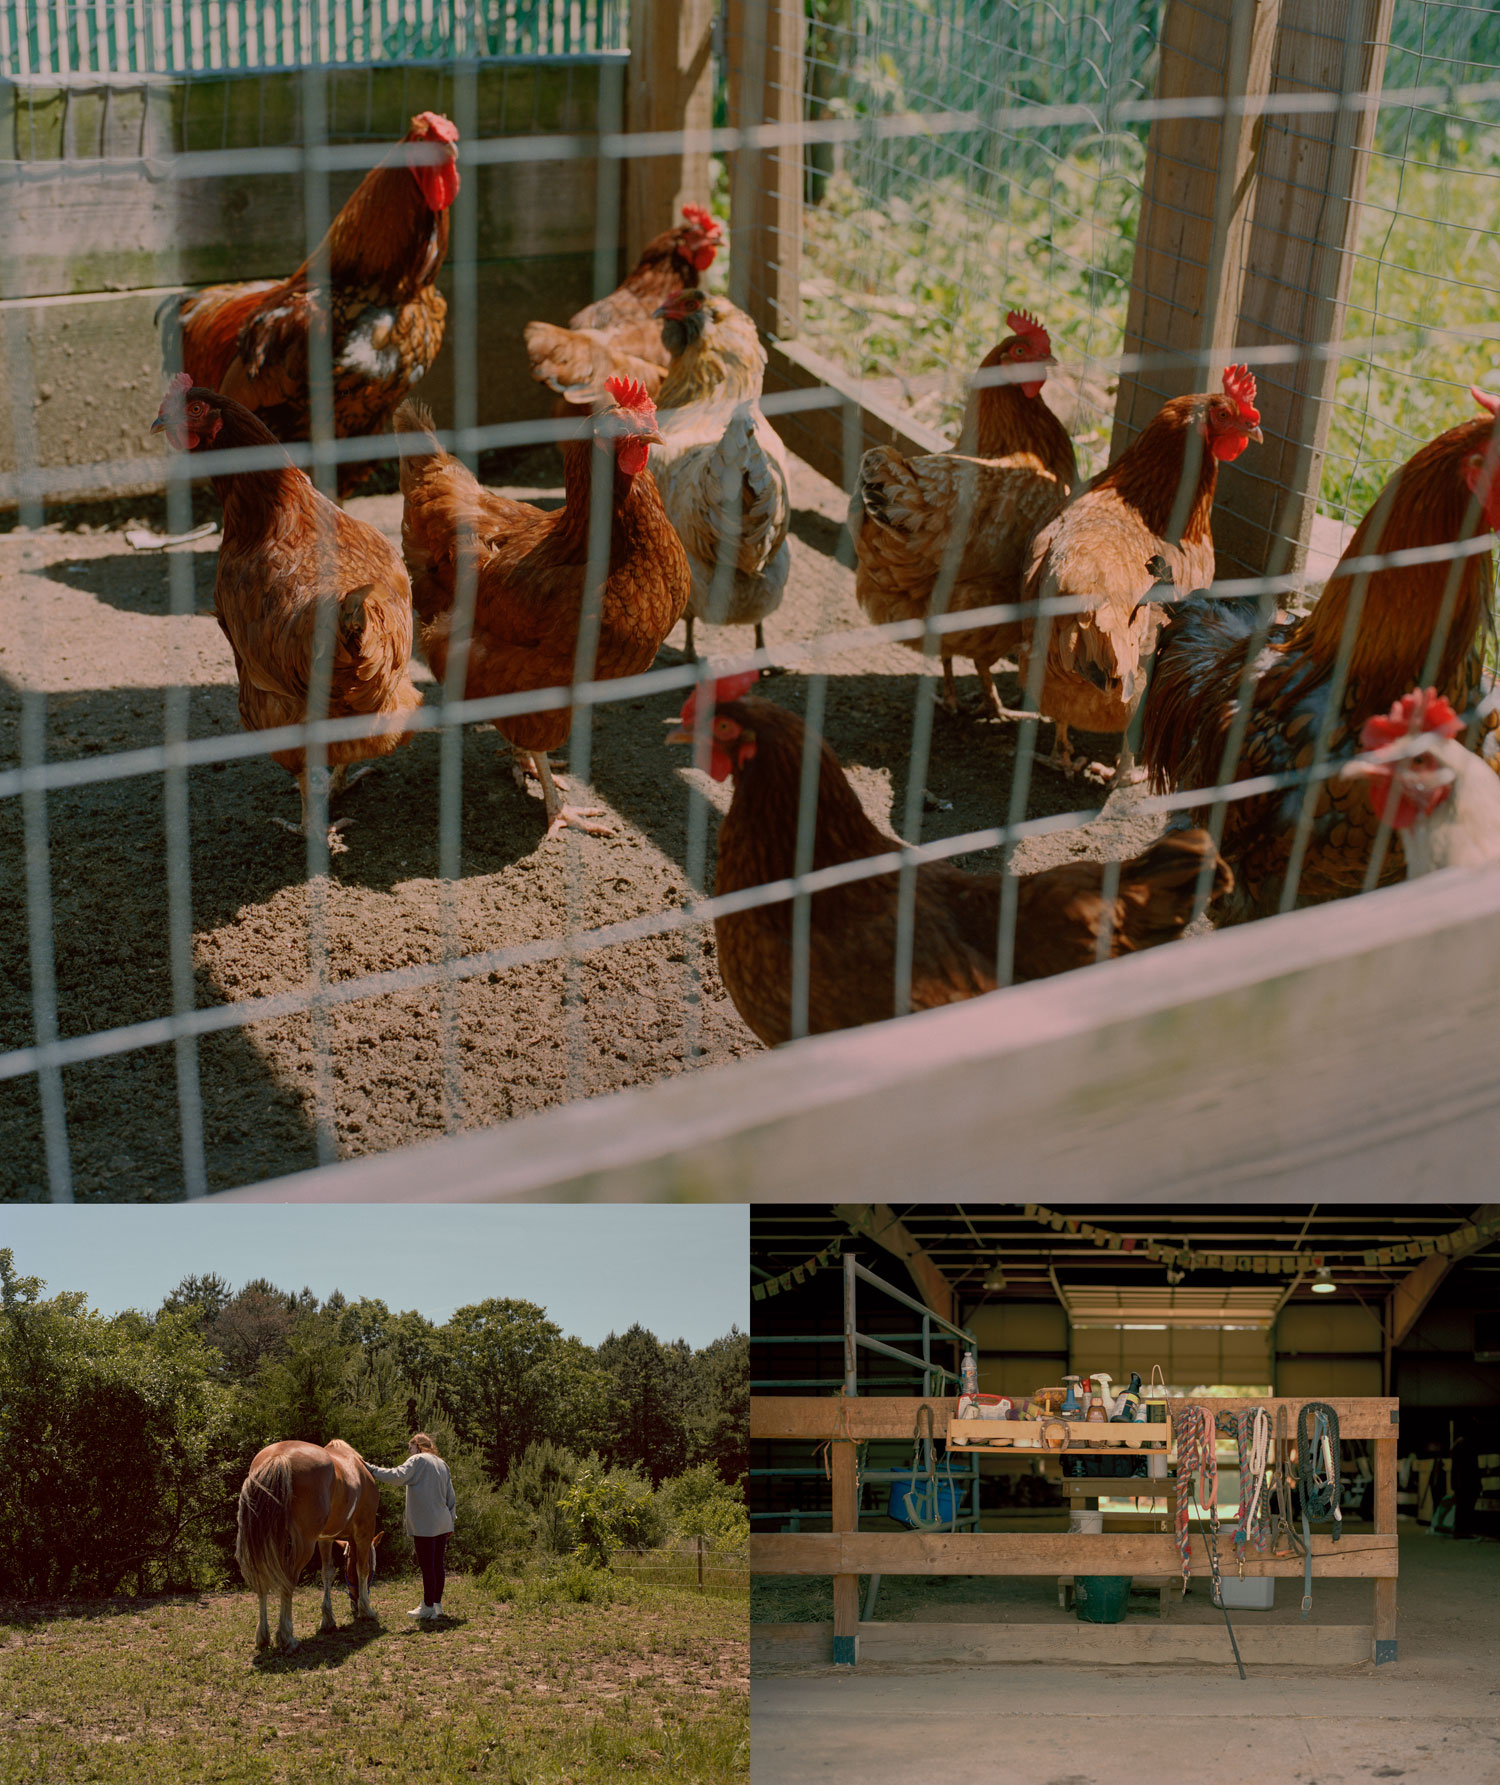 Top: Chickens are among the livestock tended to on Hope Farm. Bottom left: On Hope Farm, those in short- and long-term recovery are offered equine therapy, where handling horses is used as a means to rebuilding communication skills after periods of feeling isolated or disconnected. Bottom right: Farm hands store their tools in a maintenance shed and horse stable.